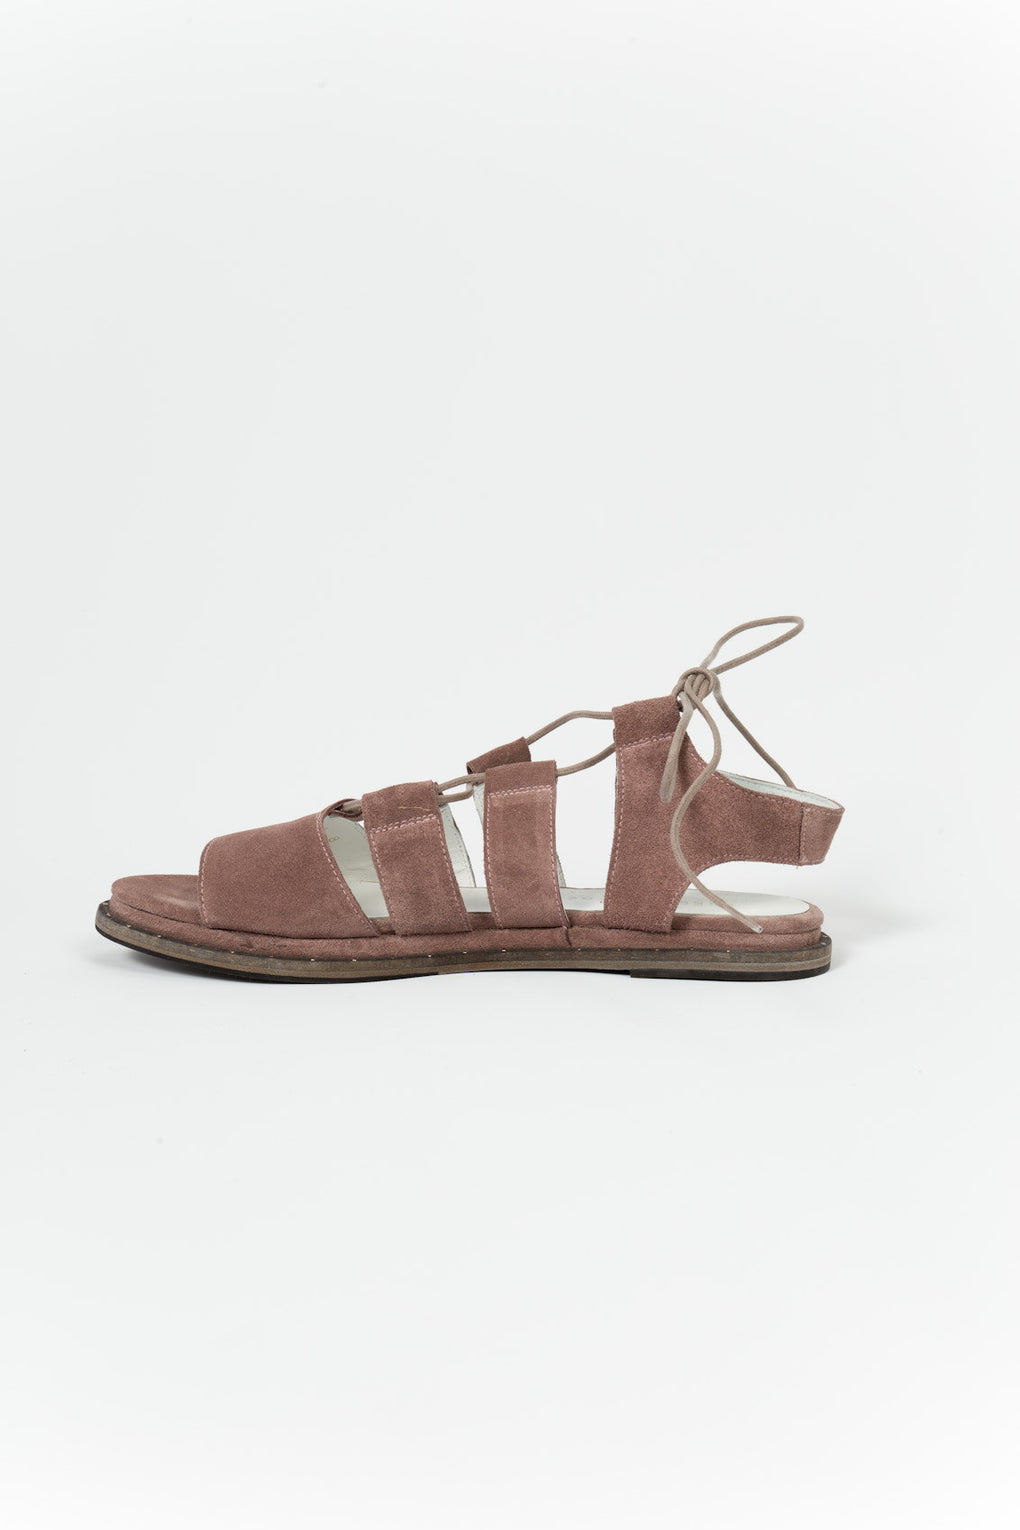 WISE Ghillie Gladiator Sandal